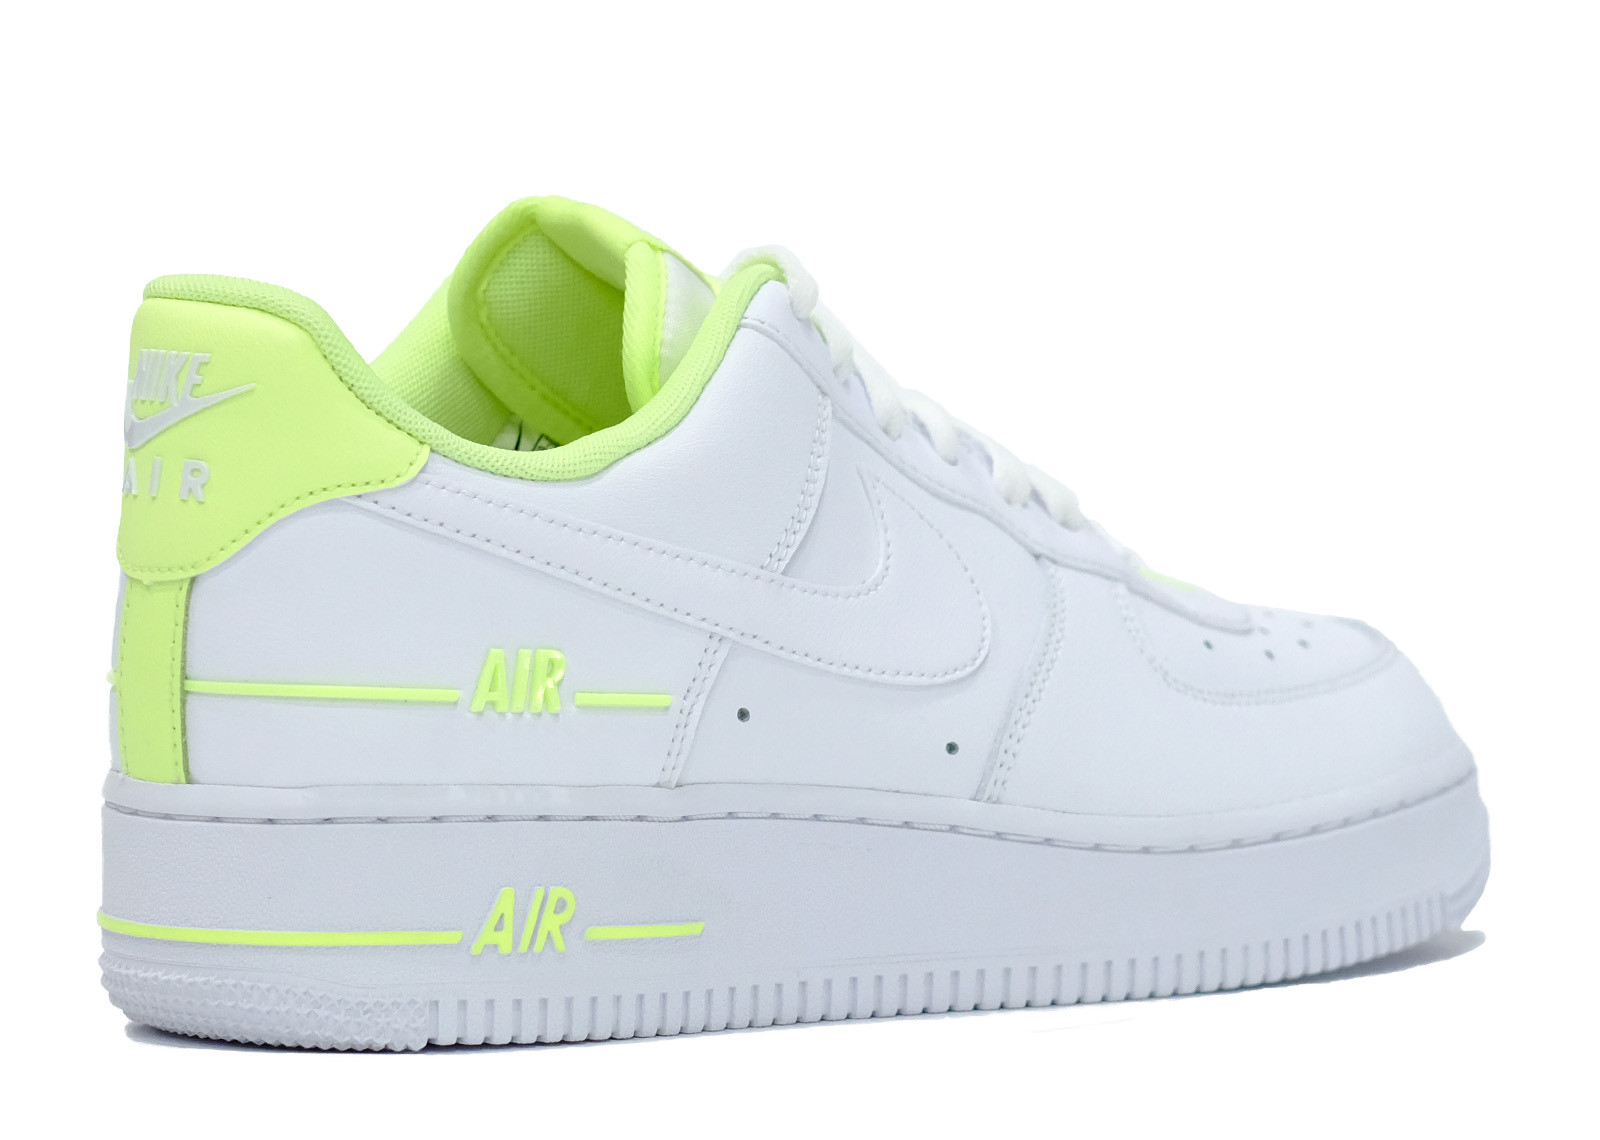 AIR FORCE 1 LOW DOUBLE AIR WHITE BARELY VOLT image 3